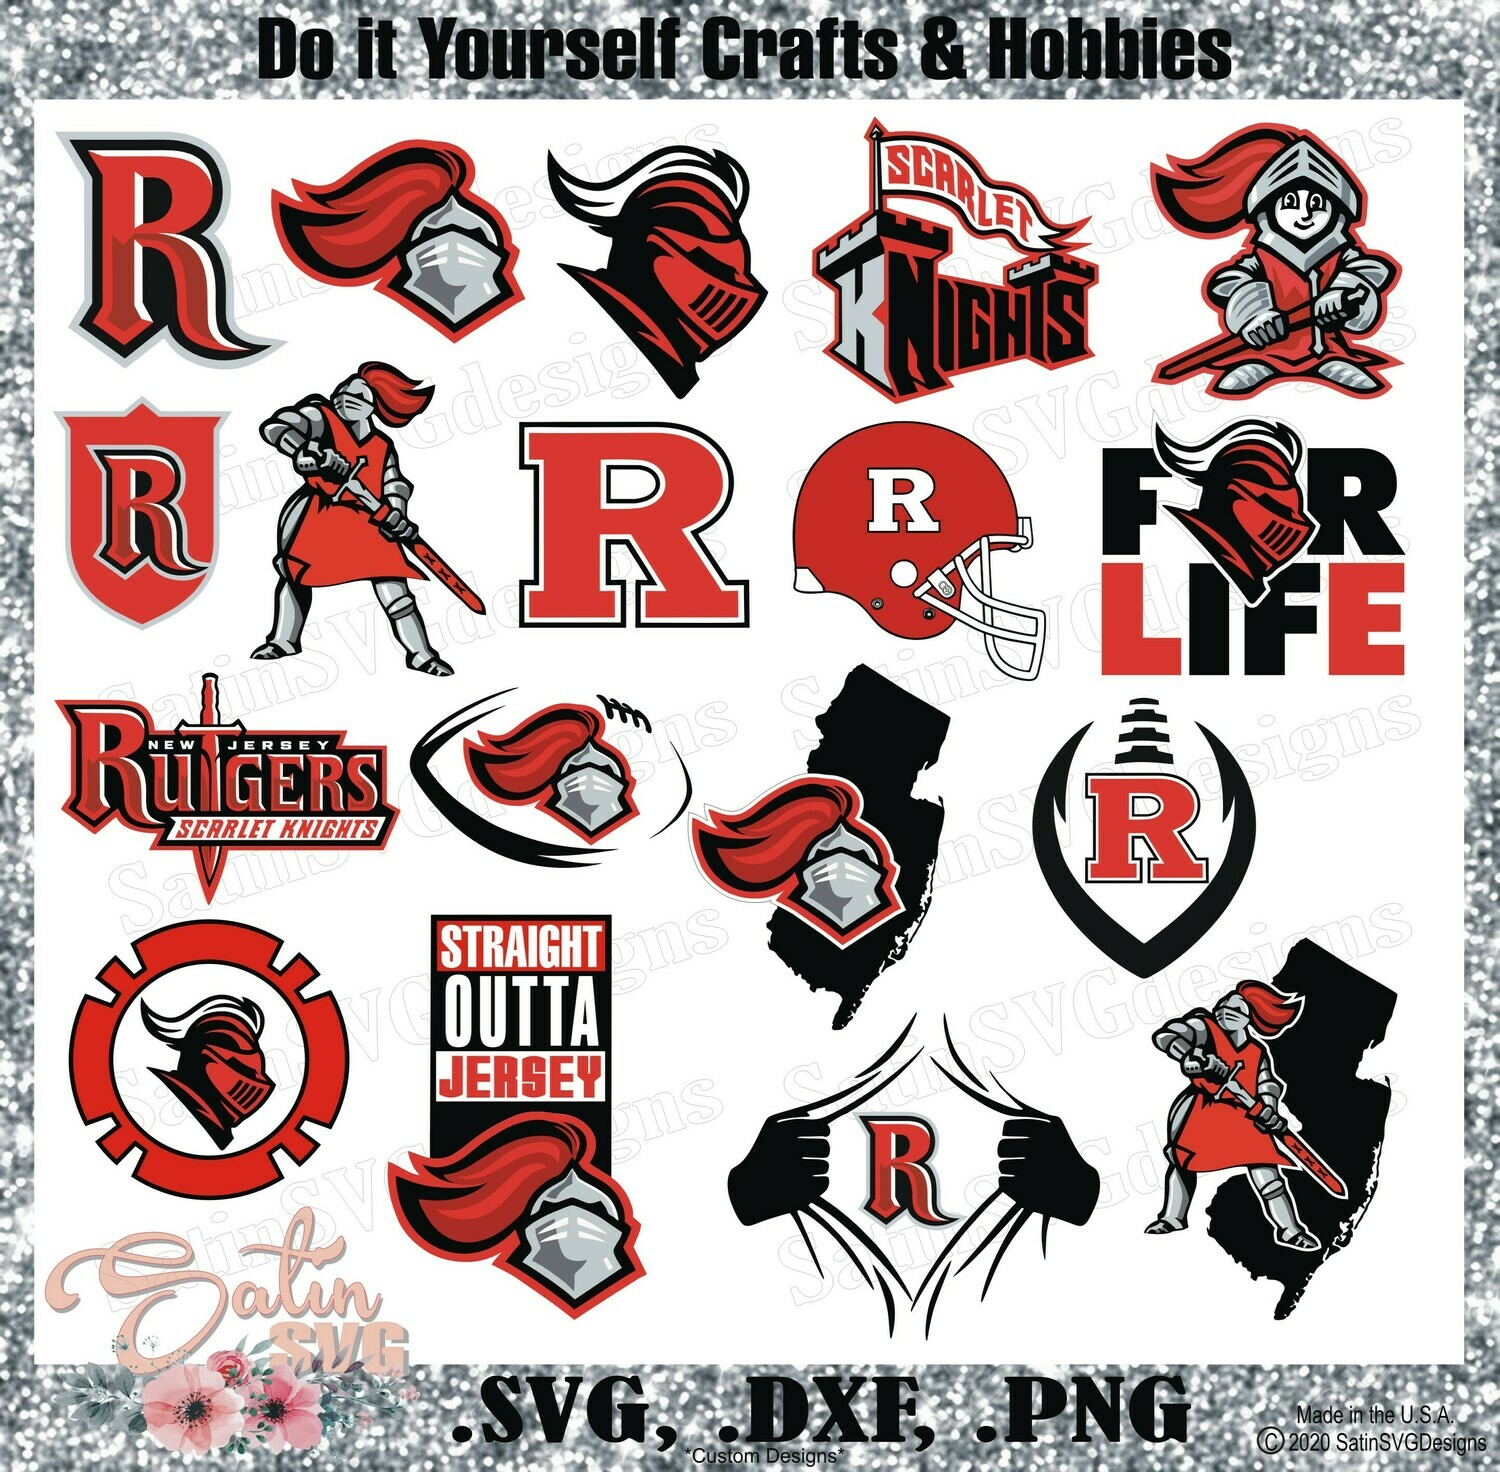 Rutgers Scarlet Knights. Rutgers University NEW Custom Designs. SVG Files, Cricut, Silhouette Studio, Digital Cut Files, Infusible Ink